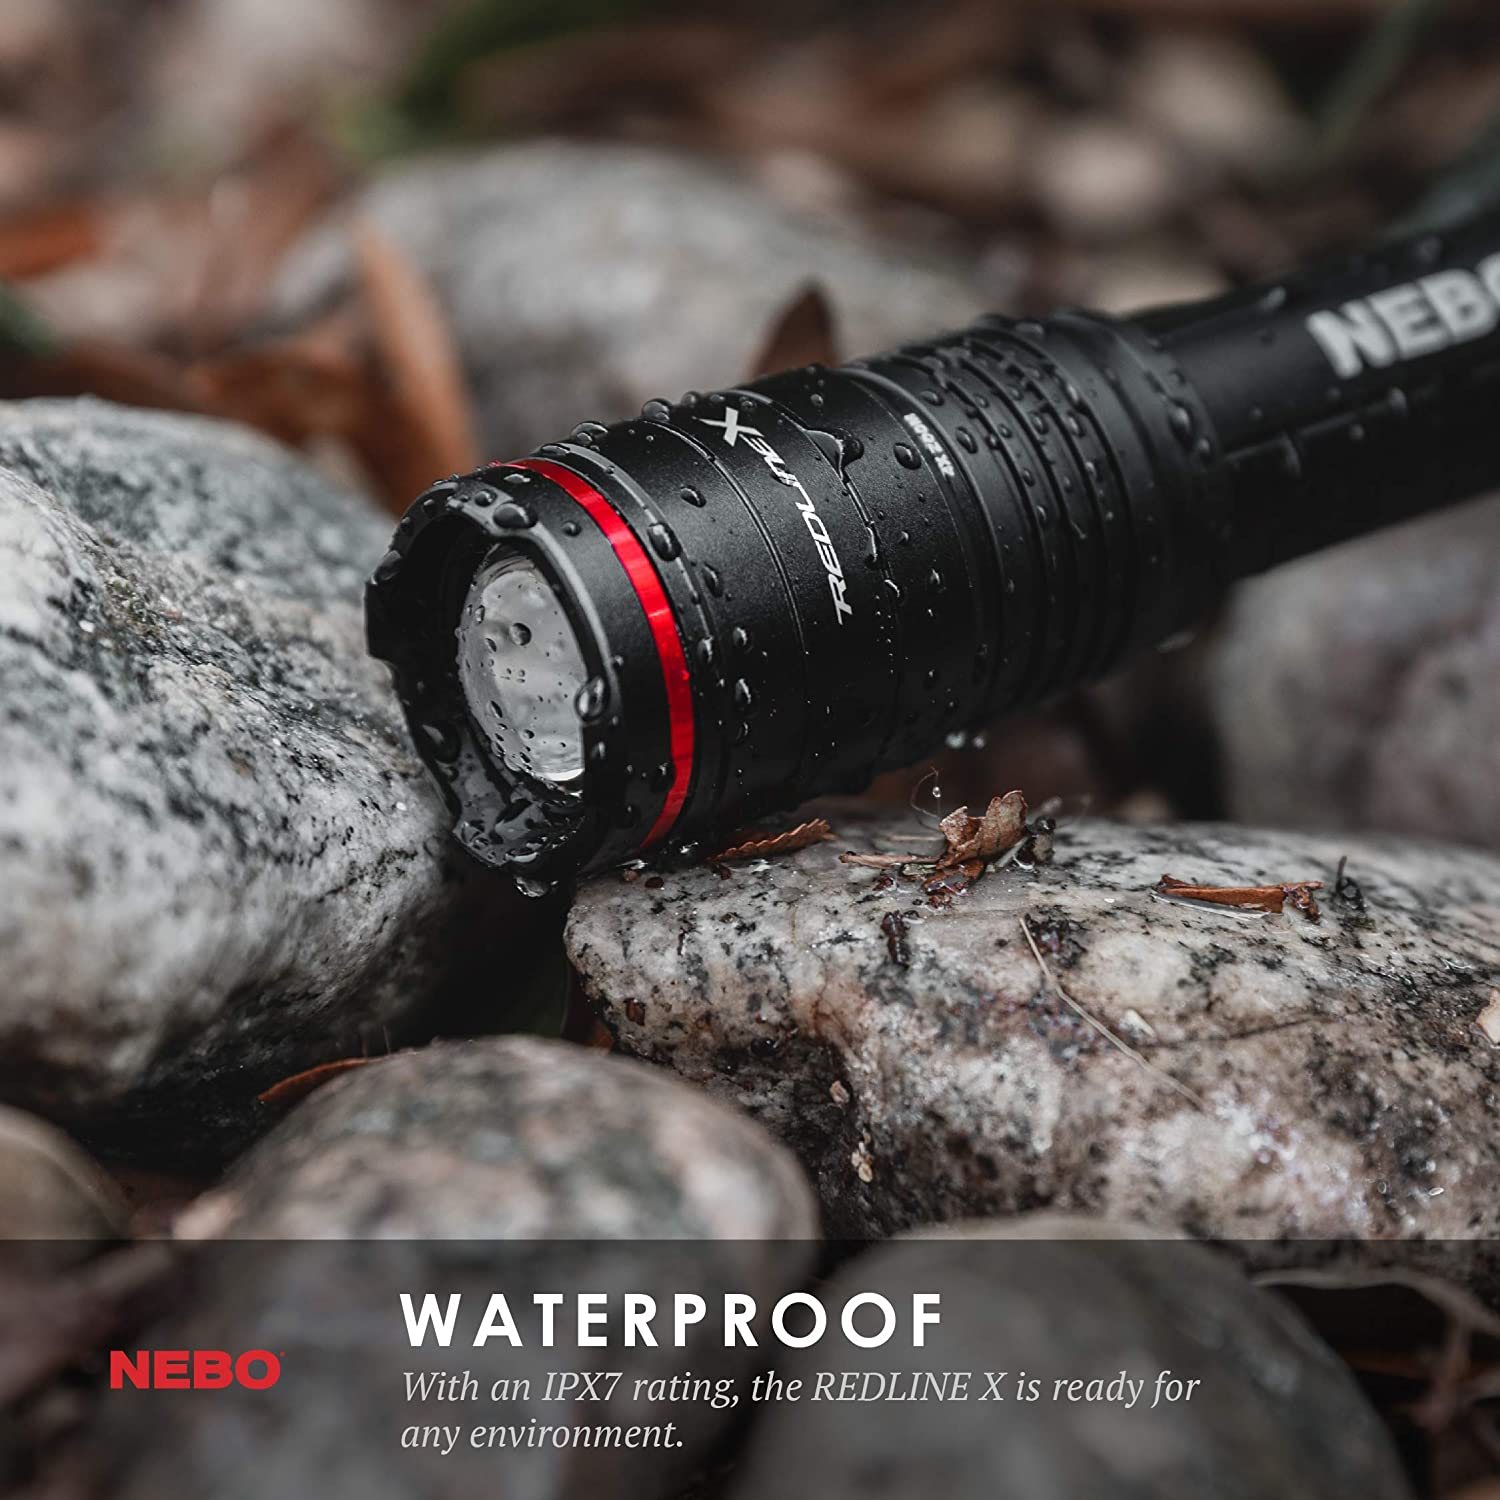 1800 lumen 4x zoom NEBO Redline-X Rechargeable Waterproof Flashlight Switch-X technology; patented paddle switching mechanism to operate the power mode and instant activation for TURBO and Strobe